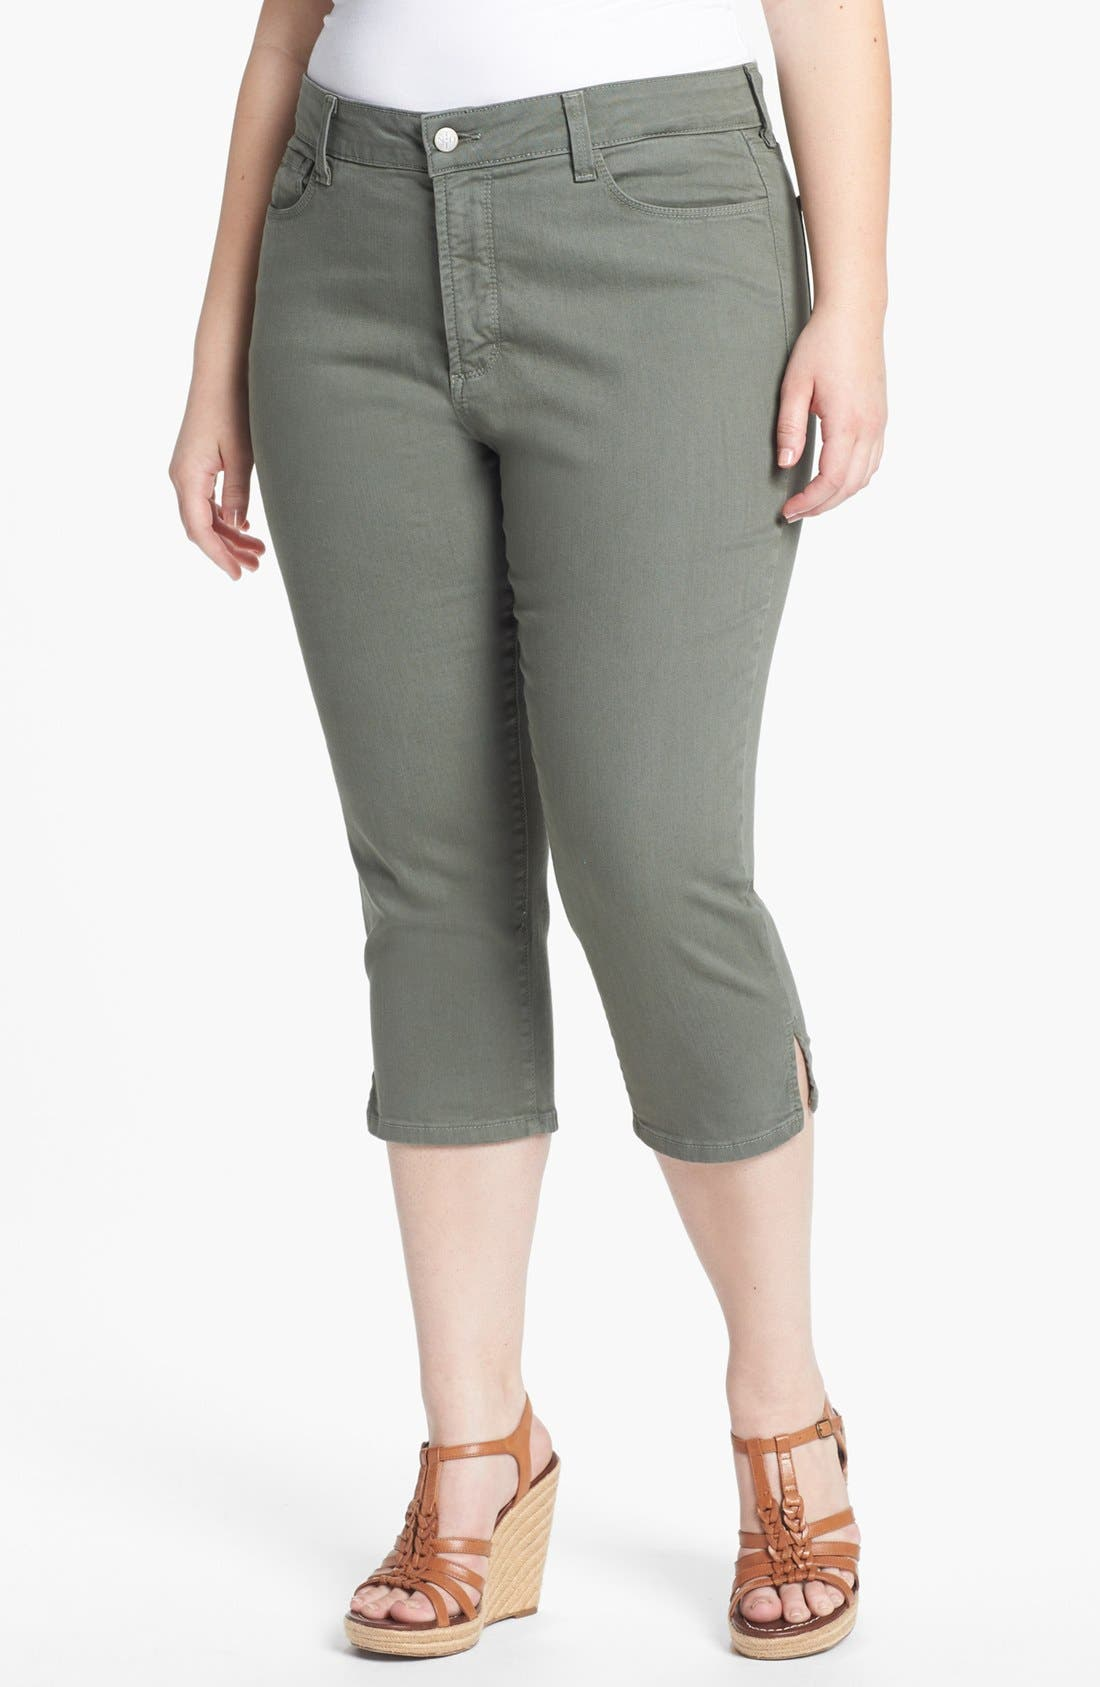 Alternate Image 1 Selected - NYDJ 'Nanette' Crop Stretch Jeans (Plus Size)